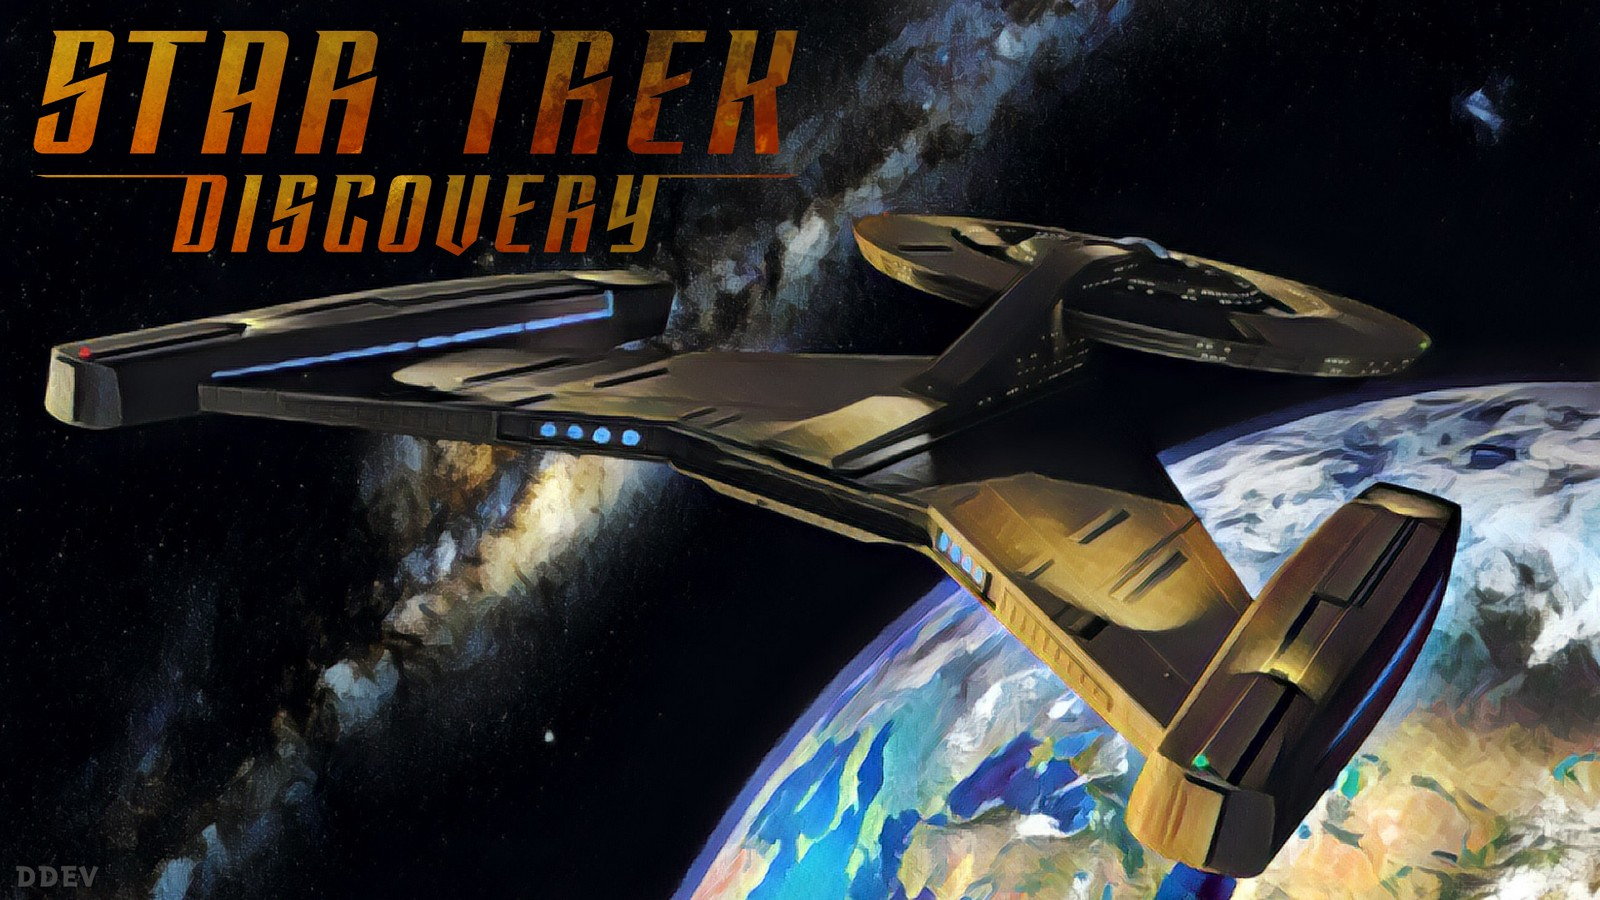 Star Trek Discovery Hd Wallpapers Images Pictures And